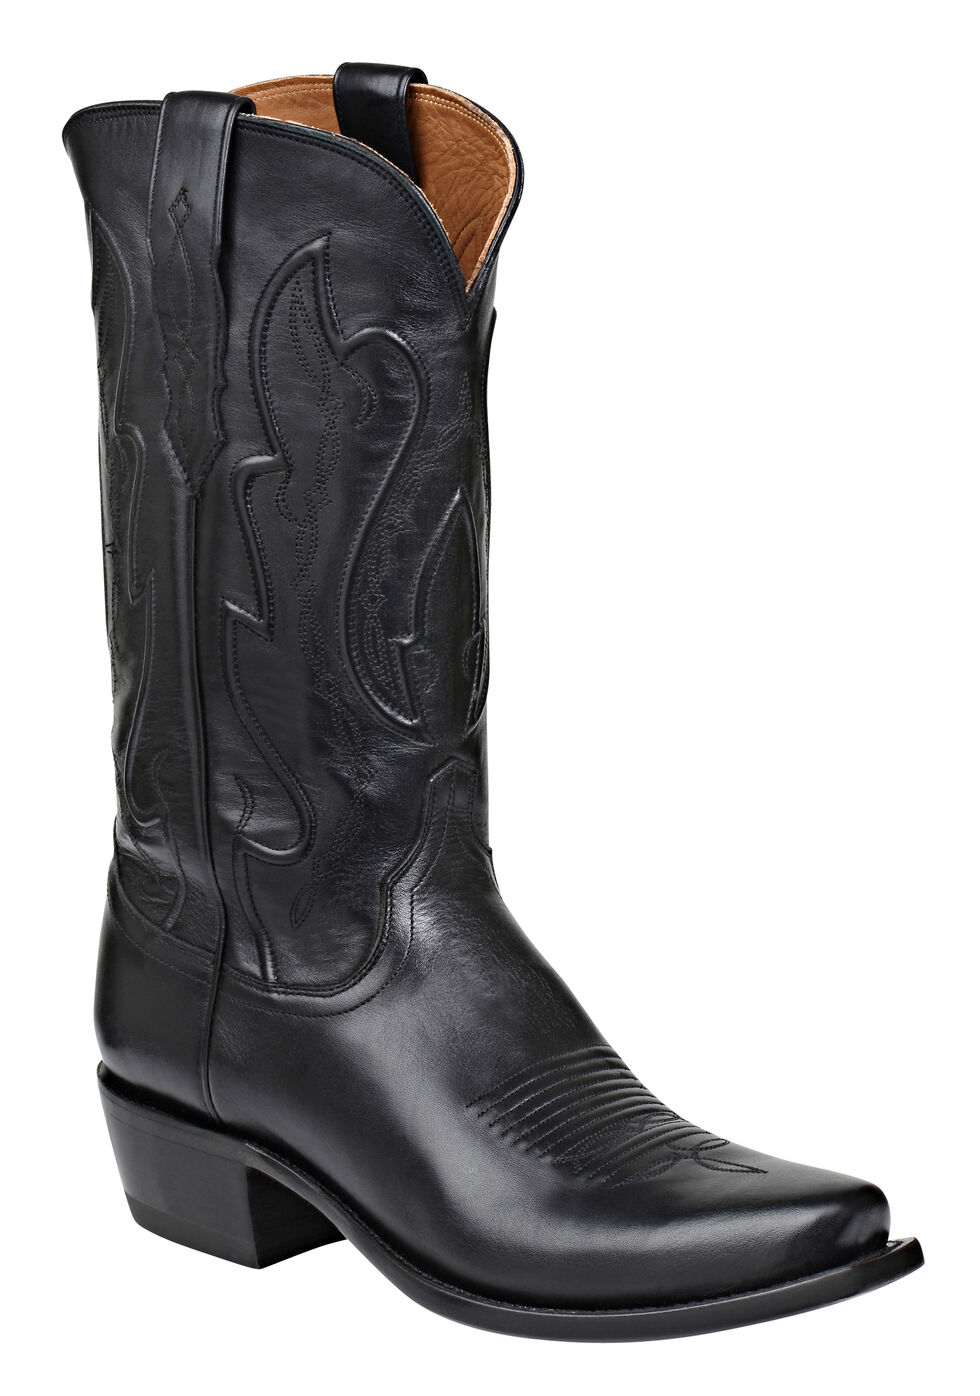 Lucchese Handmade 1883 Men's Cole Cowboy Boots - Square Toe, Black, hi-res